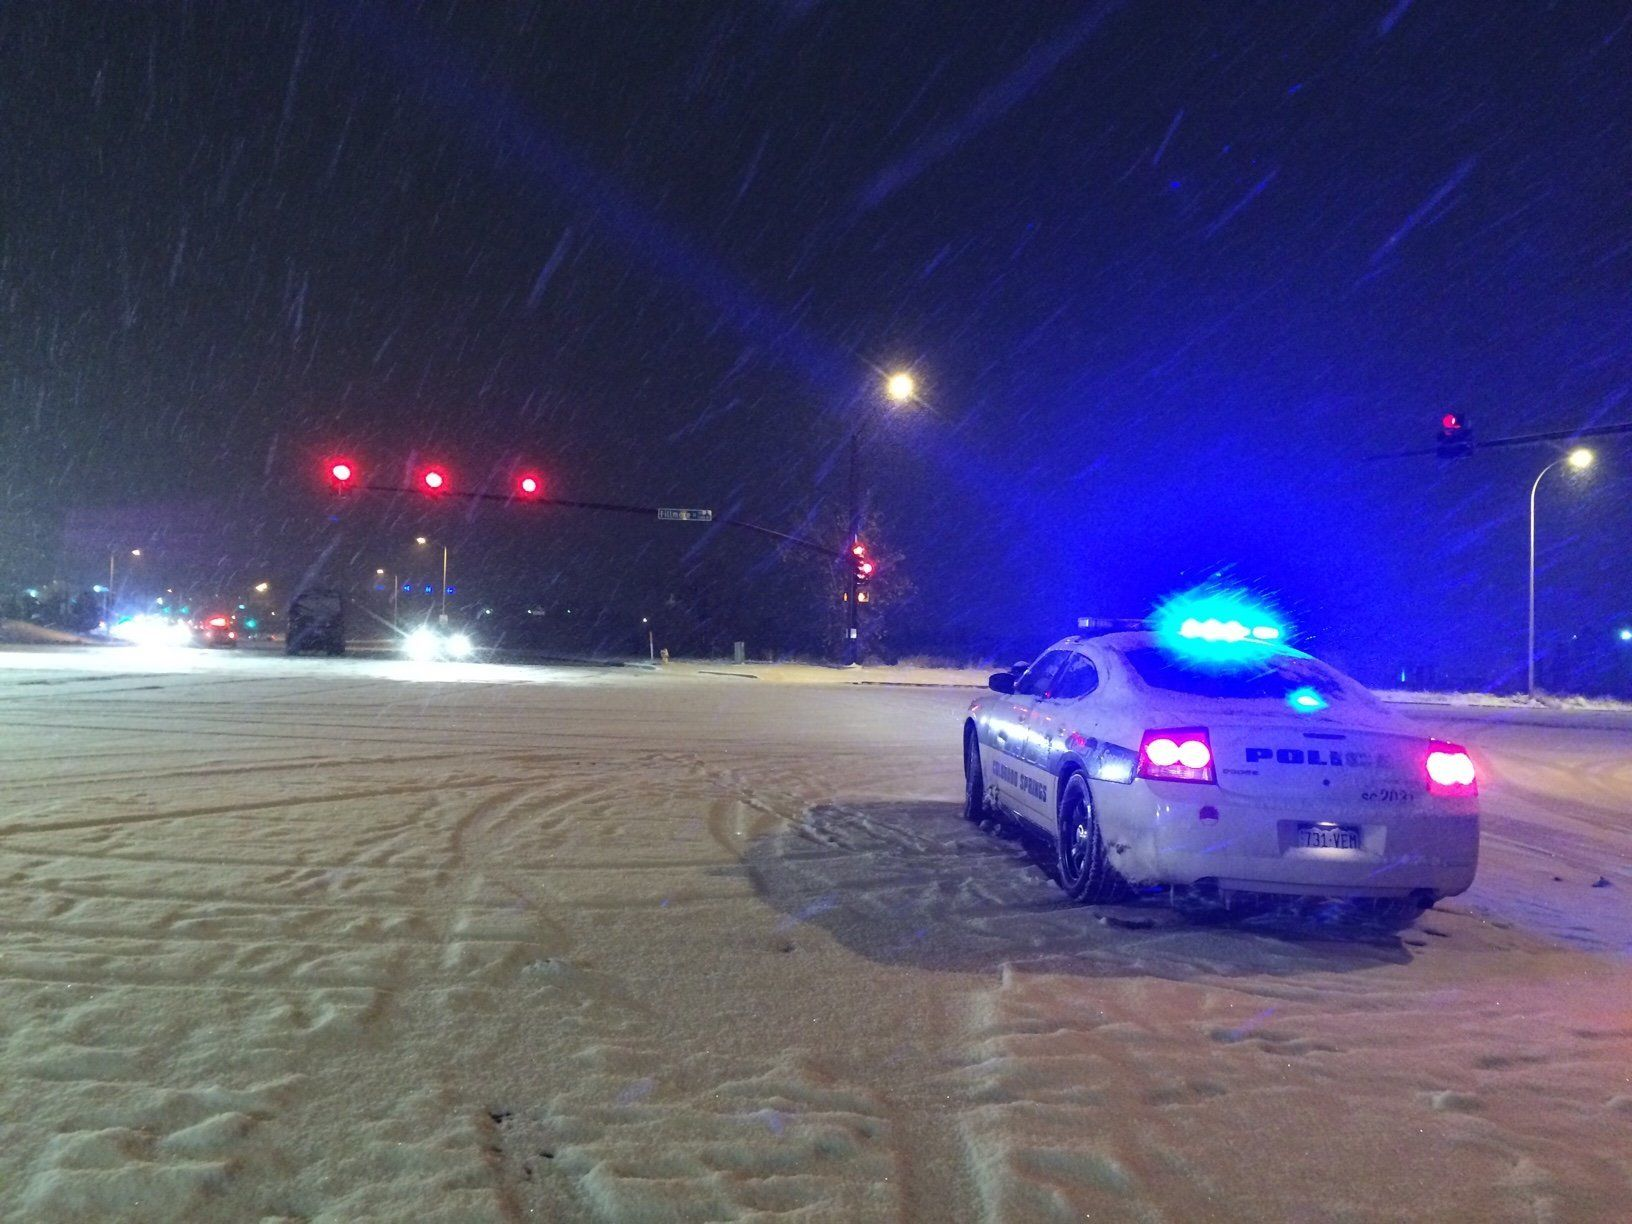 """<span class='image-component__caption' itemprop=""""caption"""">A police car is seen Friday night at the intersection of Fillmore St. and Centennial Blvd., near the Planned Parenthood clinic in Colorado Springs.</span>"""